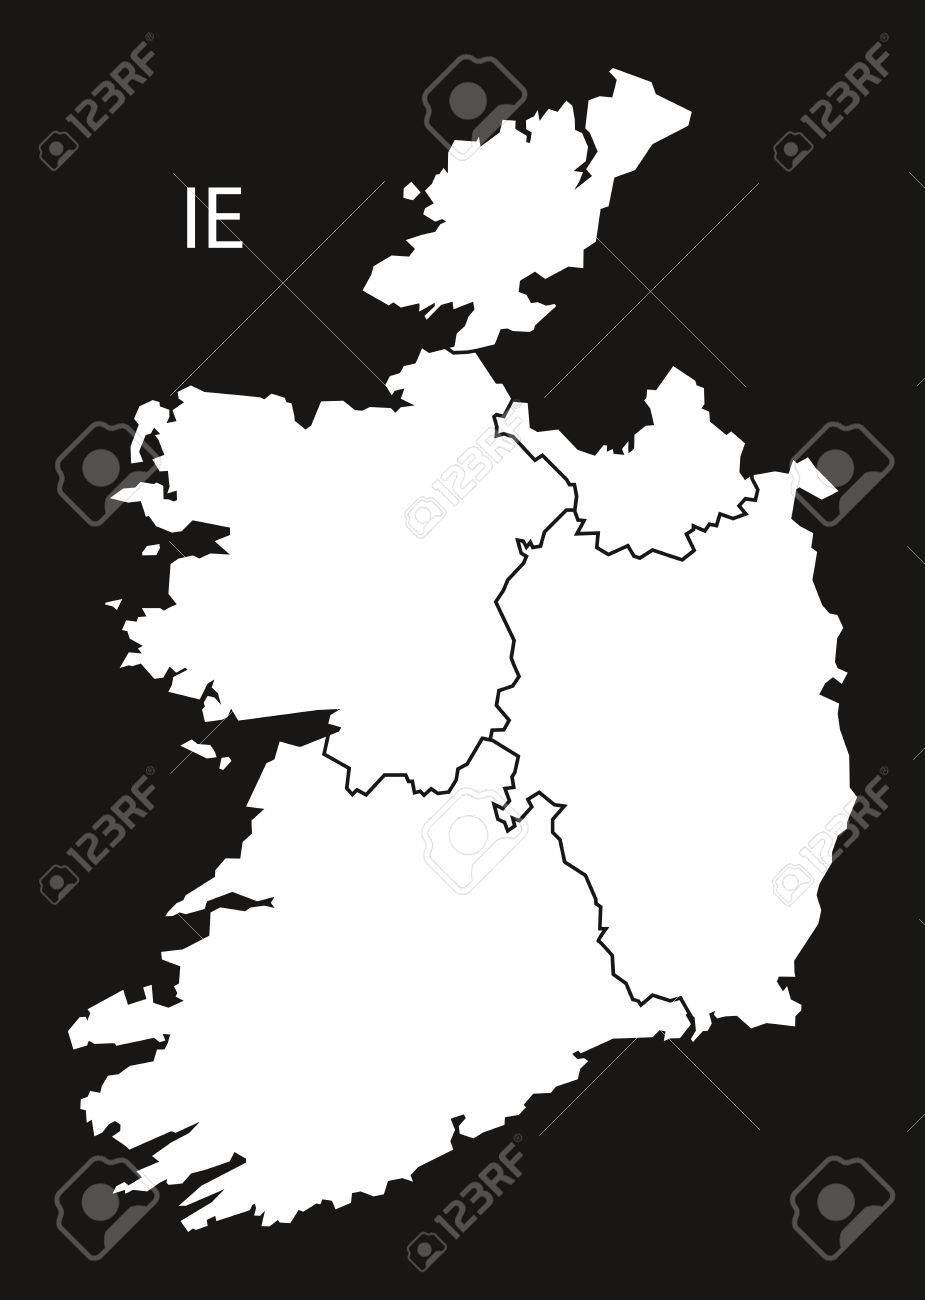 Map Of Ireland Black And White.Ireland Provinces Map Black White Royalty Free Cliparts Vectors